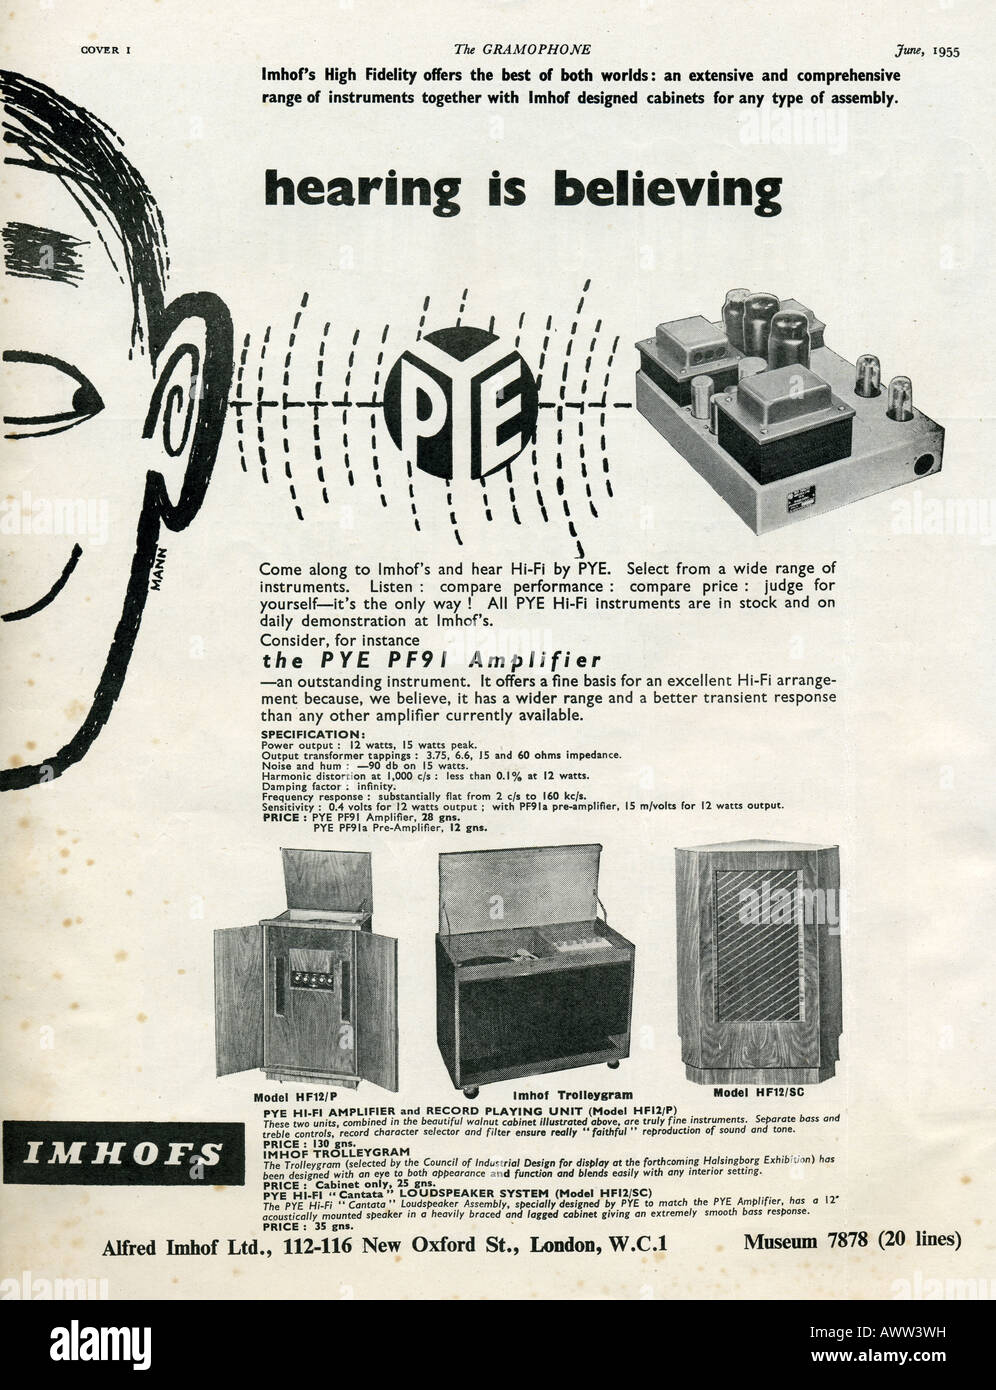 1950s The Gramophone magazine June 1955 advertisement for Imhof High